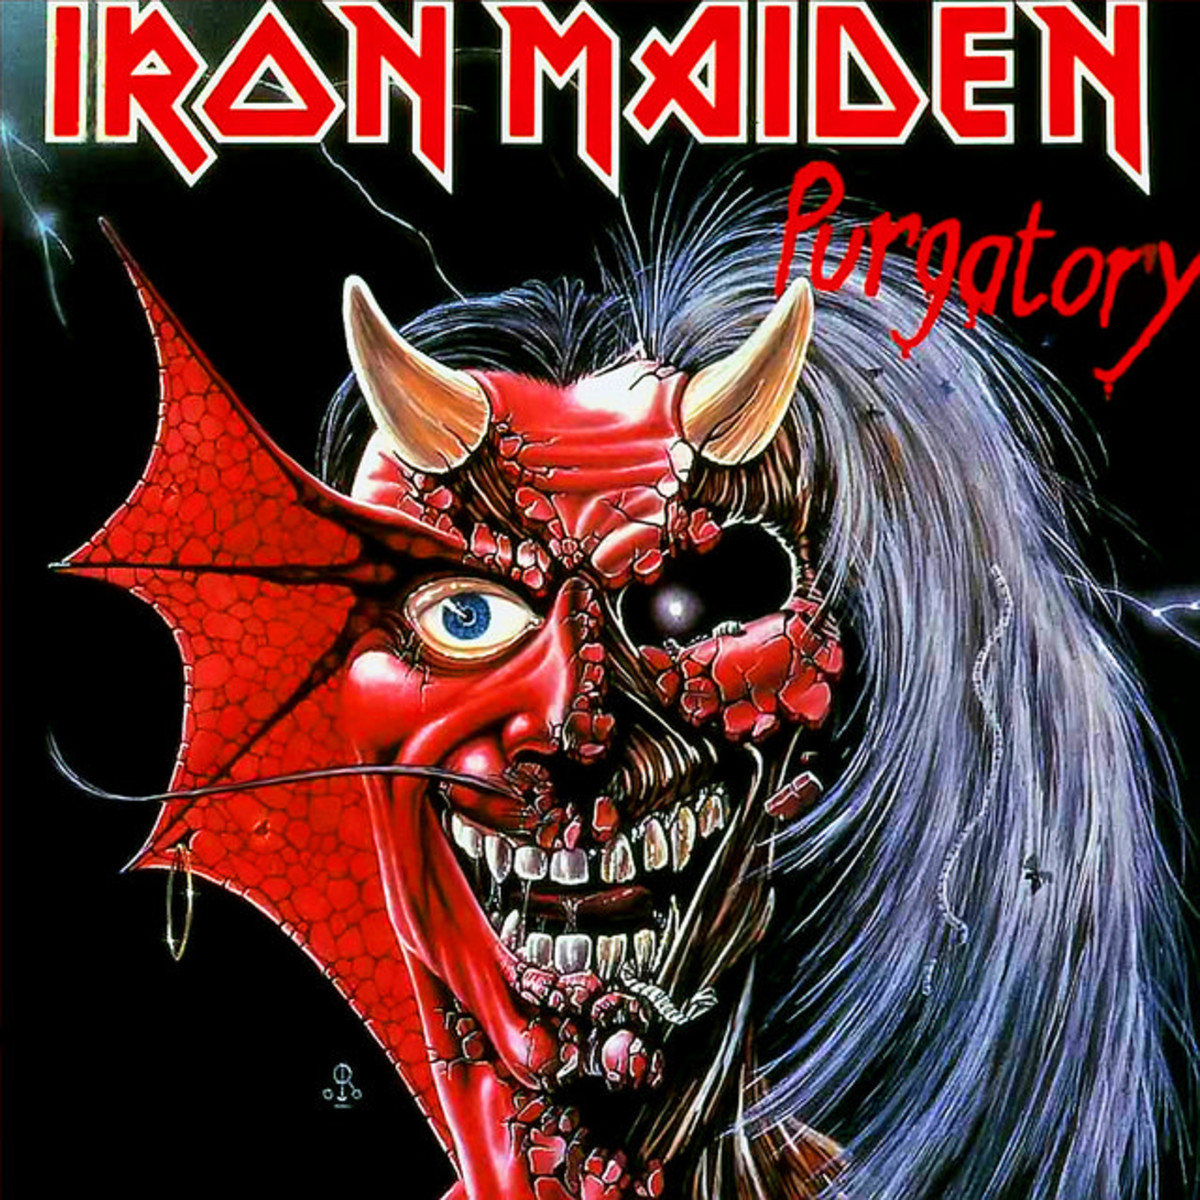 "Iron Maiden ""Purgatory""  EMI 5184 7"" Vinyl Single UK Pressing (1981)  Picture Sleeve Art by Derek Riggs"